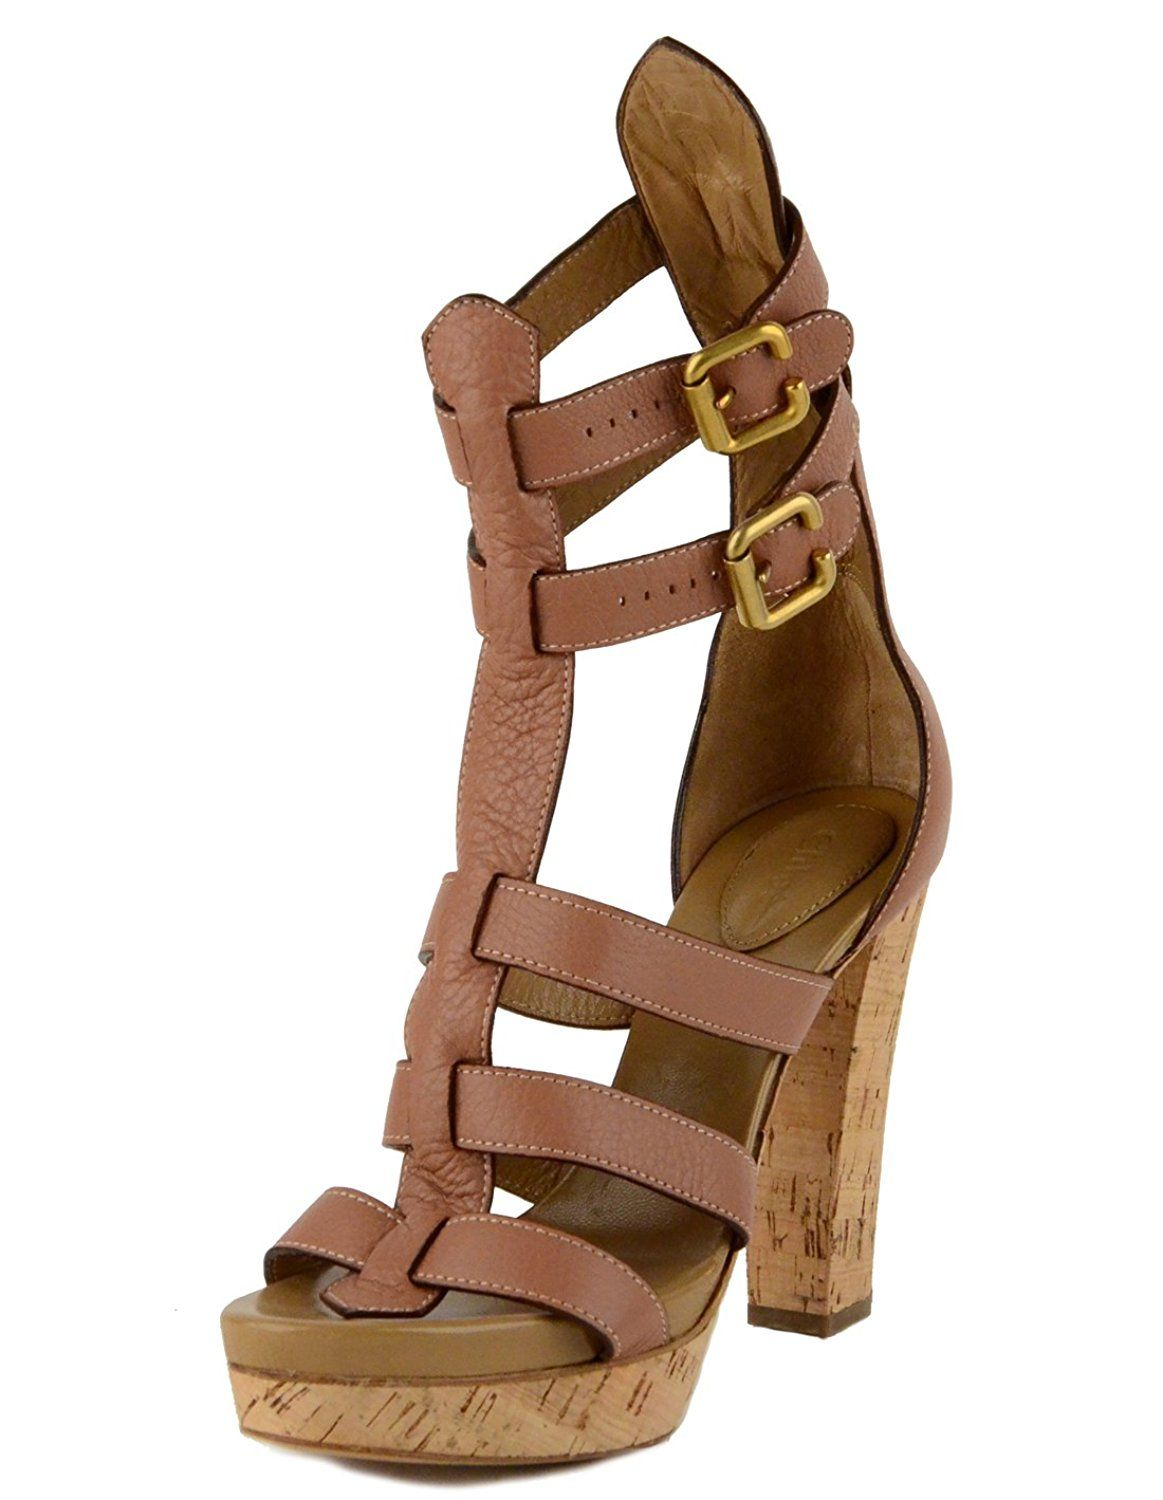 2aa2c58b2be4f Chloe Shoes Strappy Leather Sandals Gladiator Cork High Heels IT 40 US 9.5  -- Continue to the product at the image link. (Amazon affiliate link)